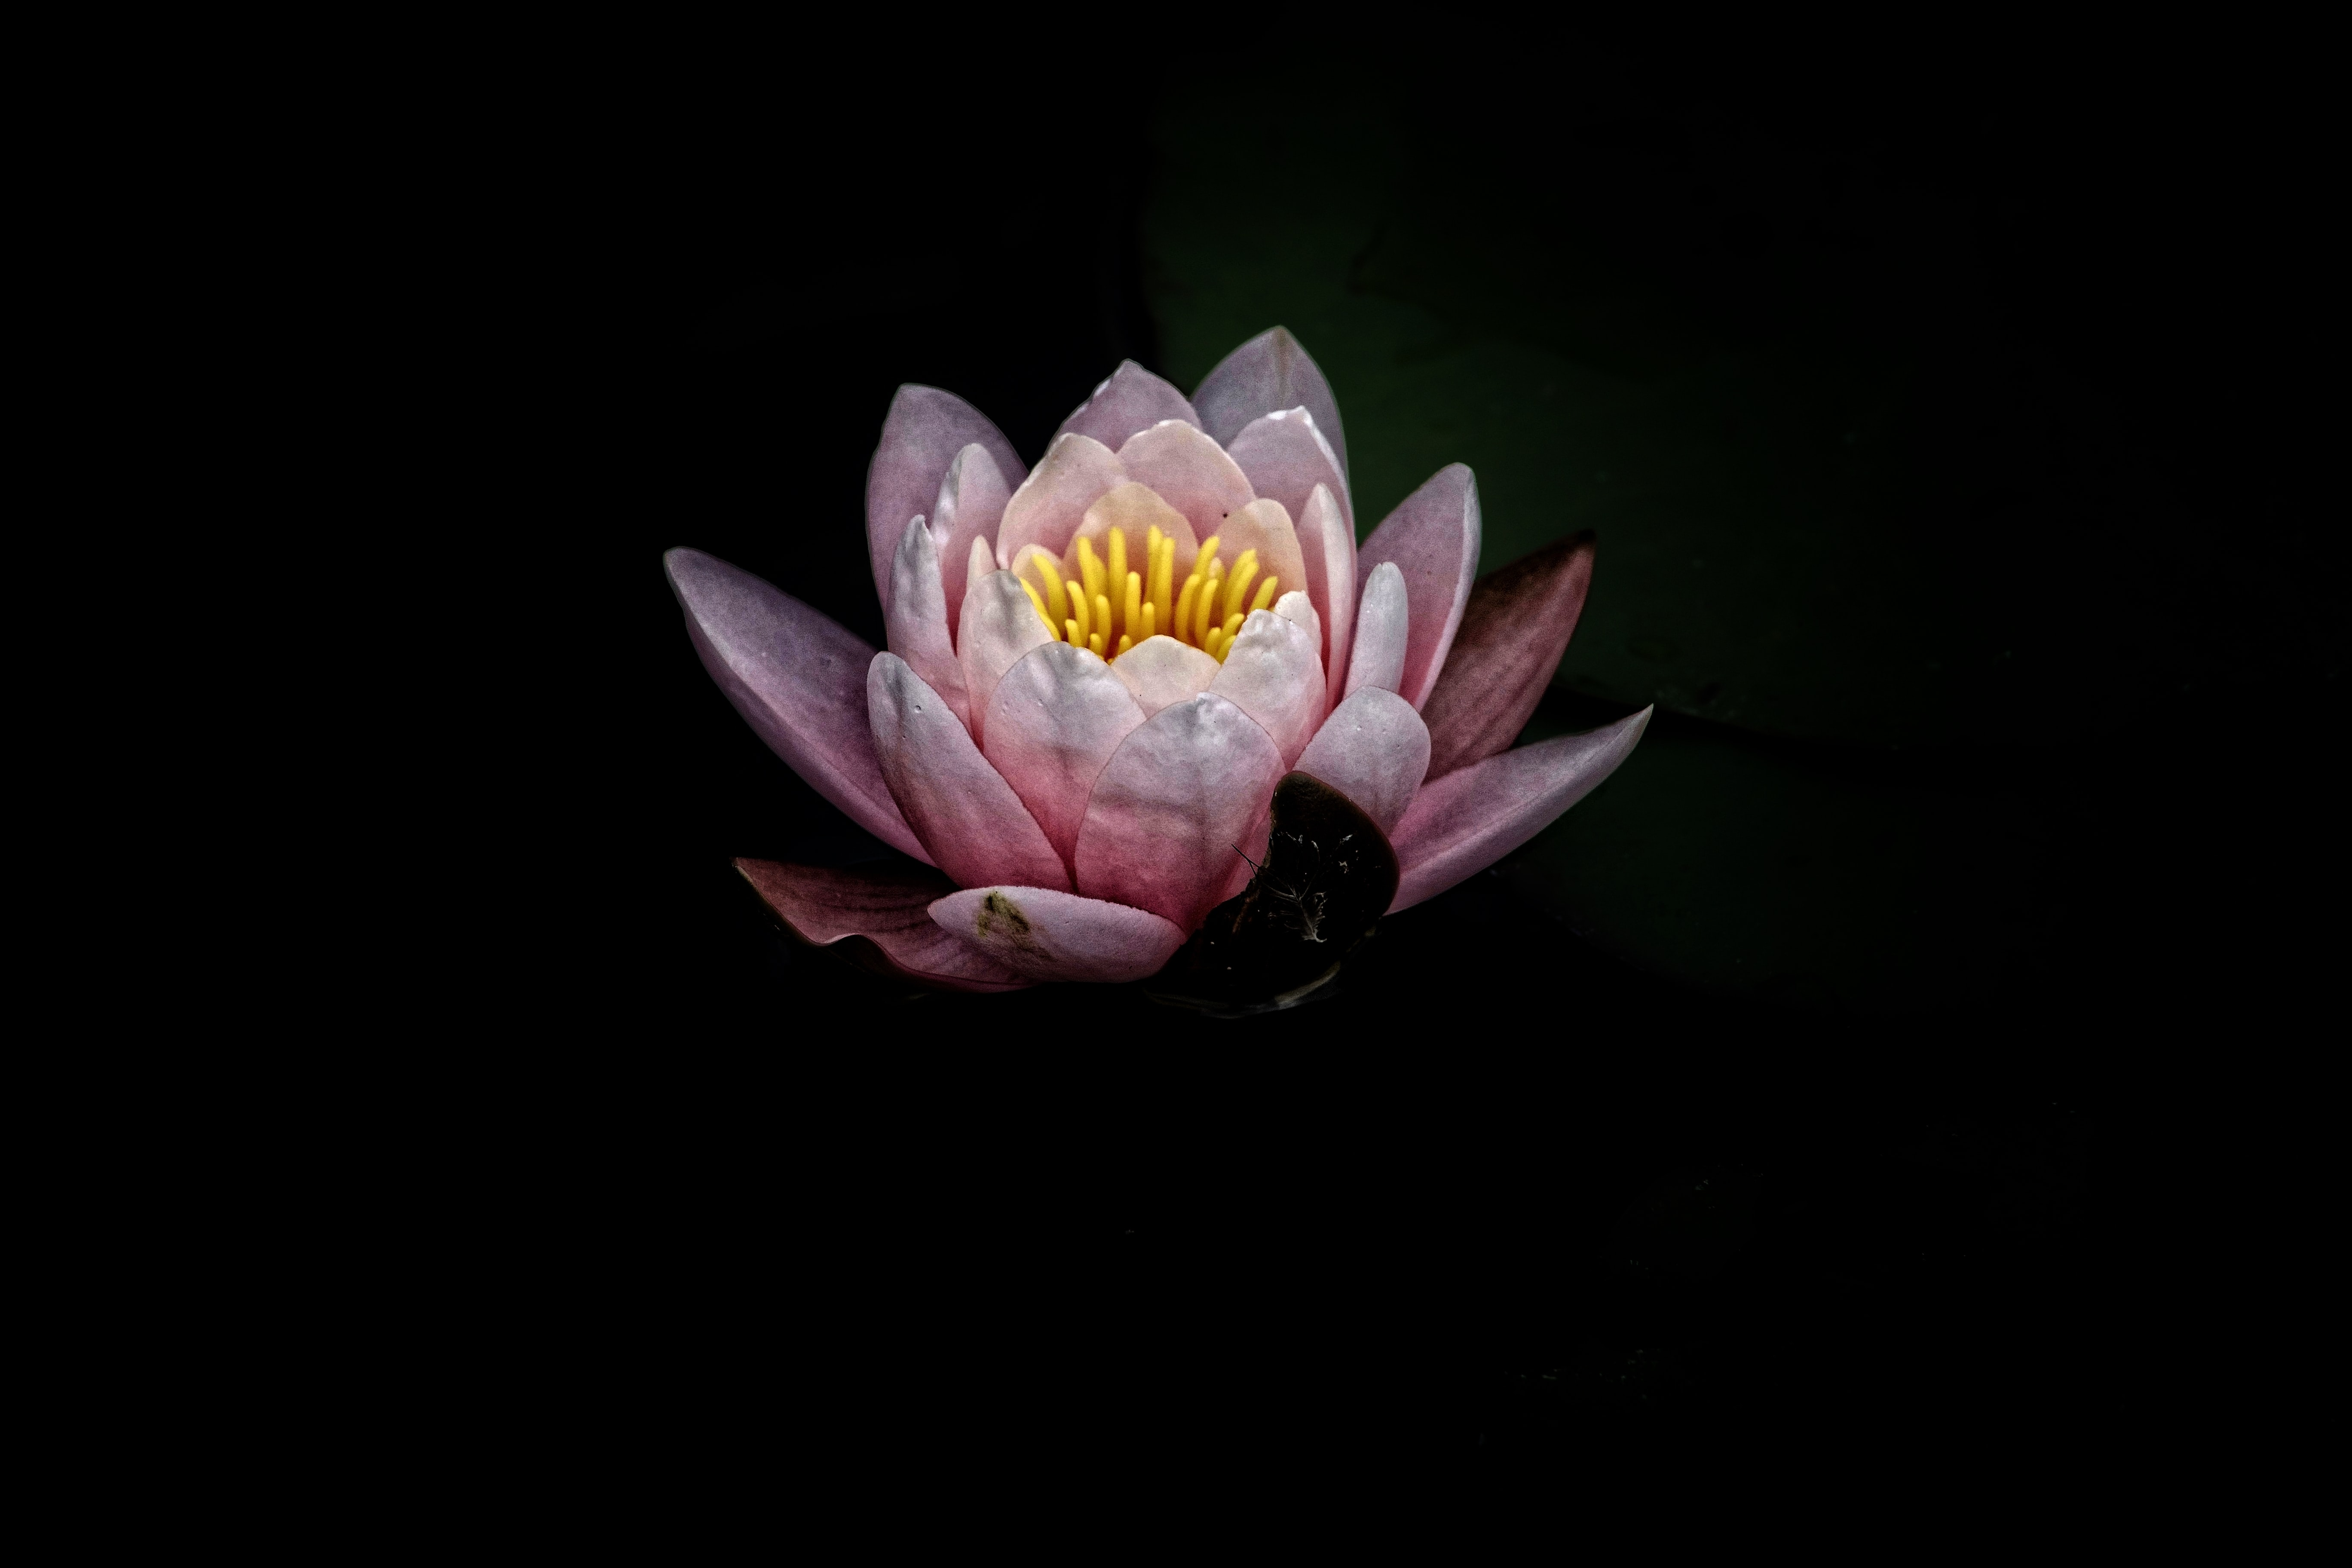 A light pink water lily against a black background